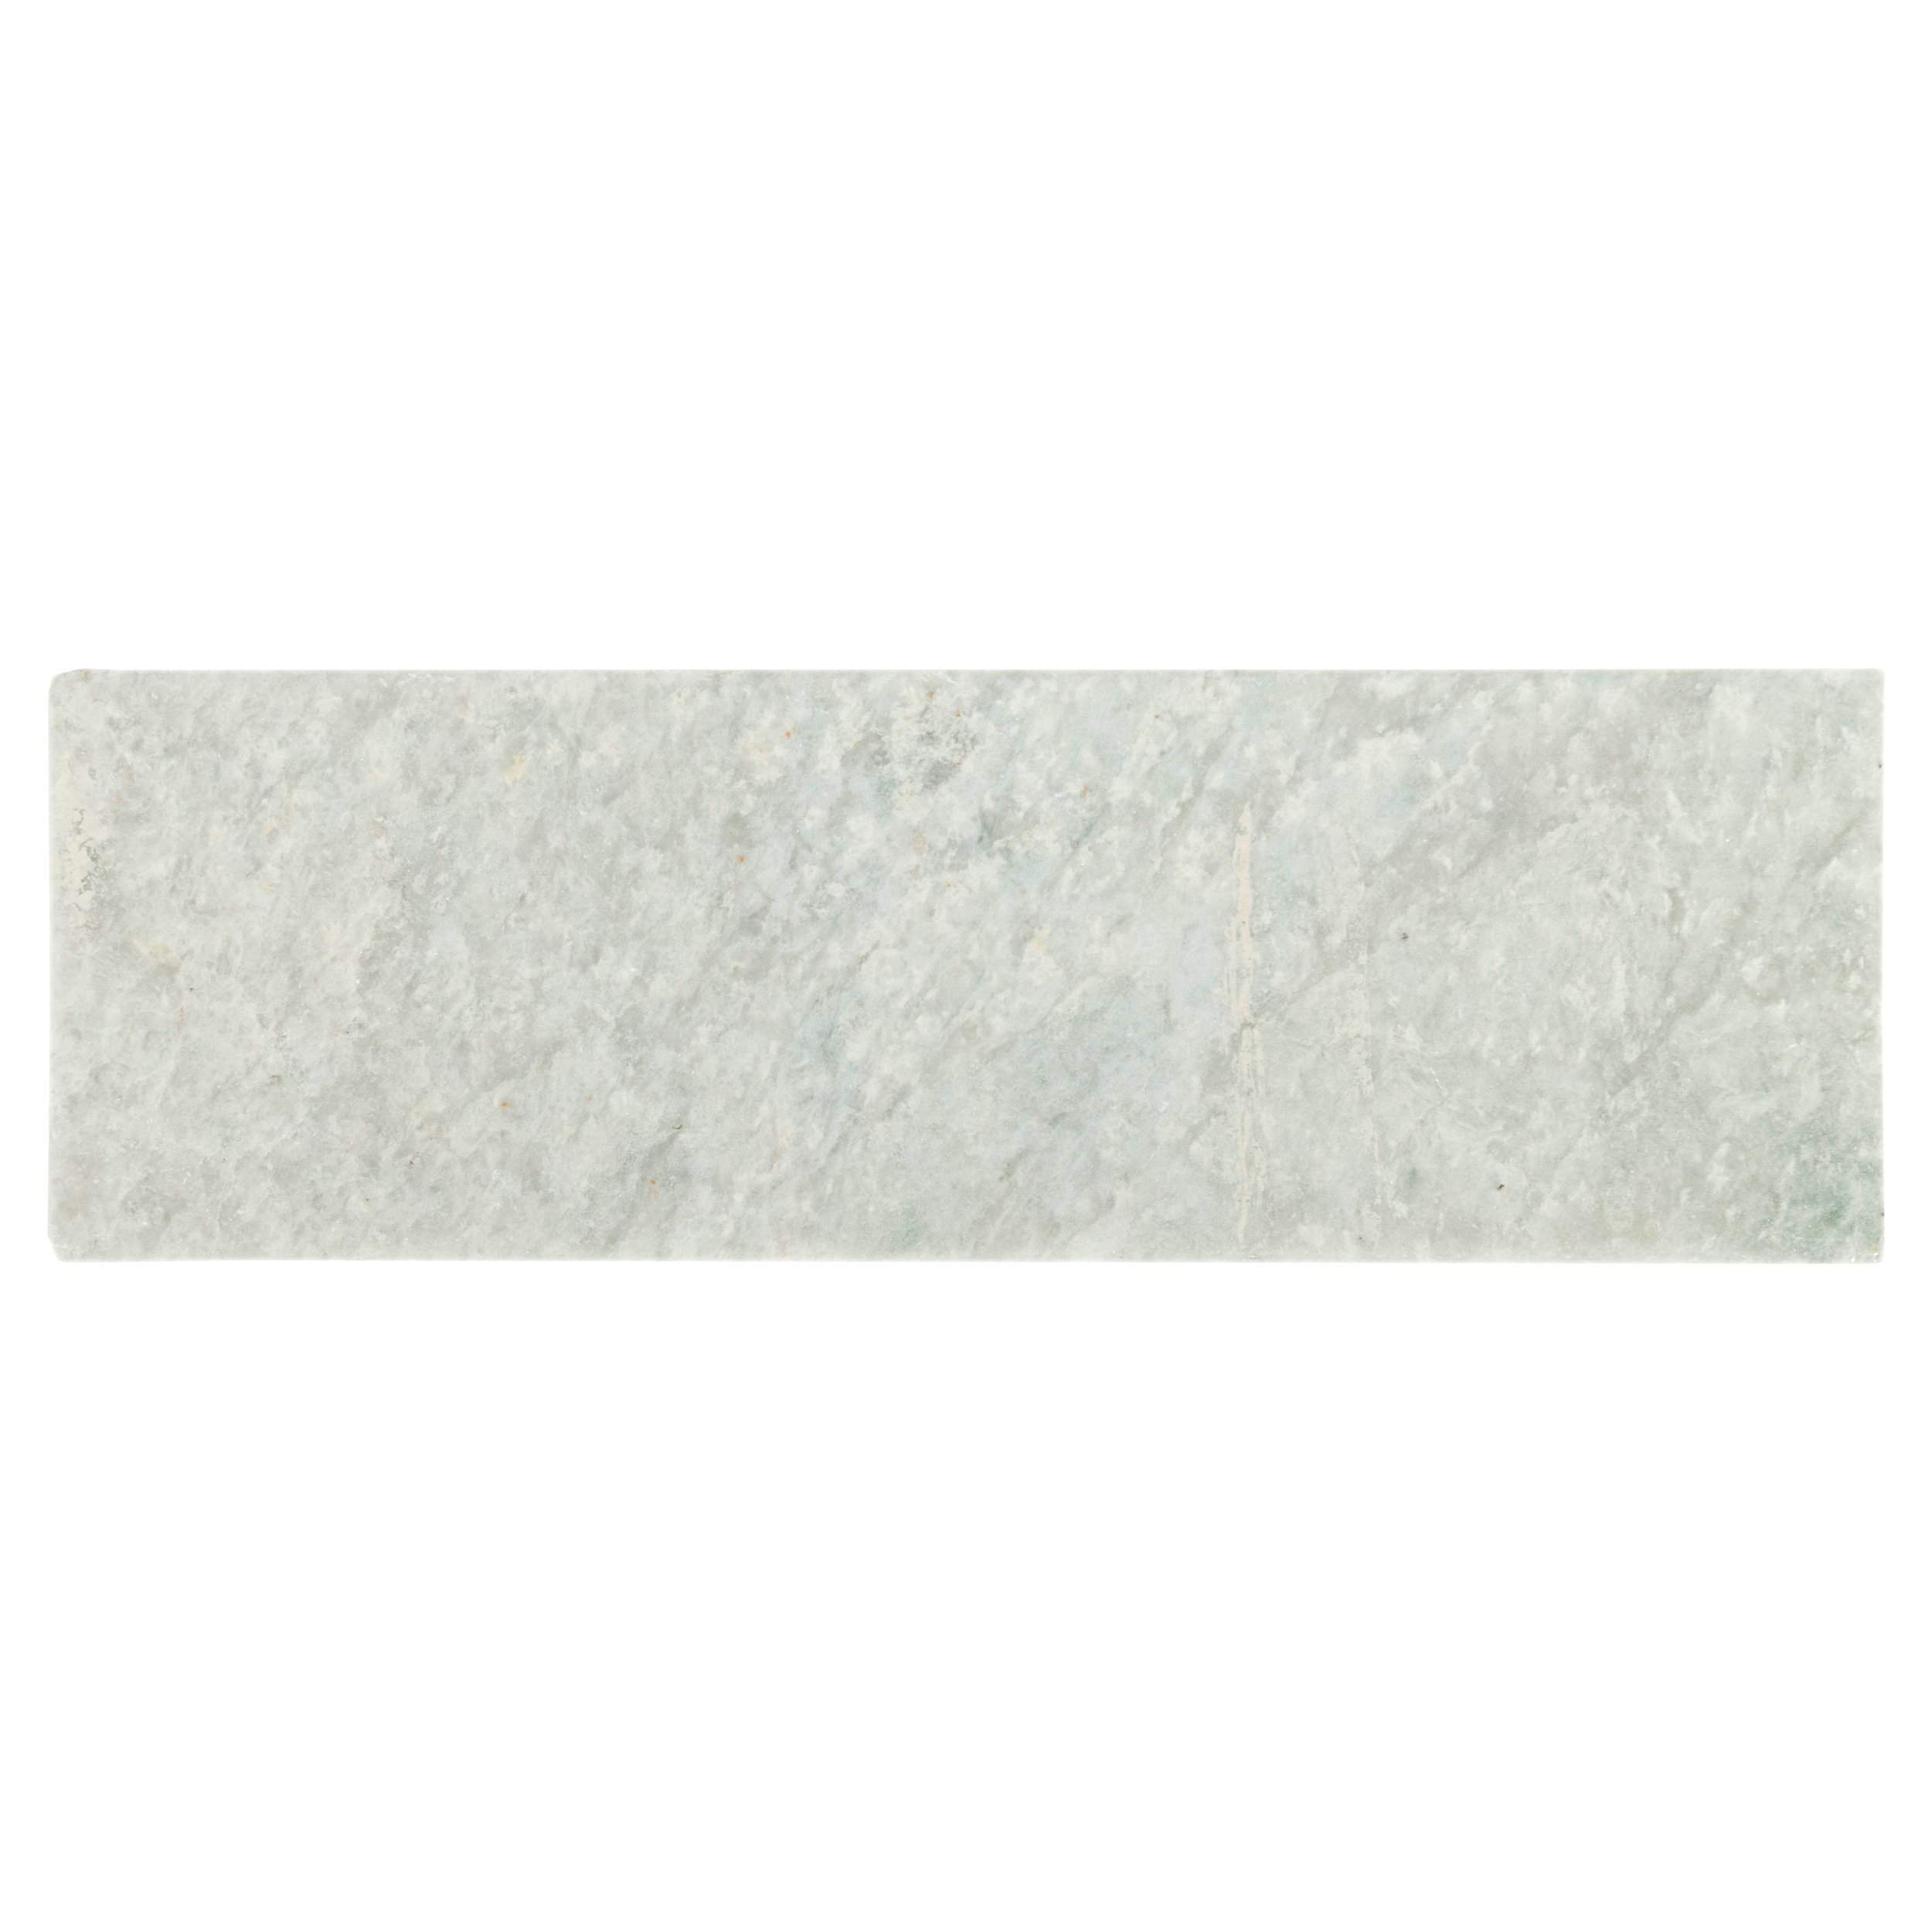 Blue Forest Marble Tile 4 X 12 100464866 Floor And Decor